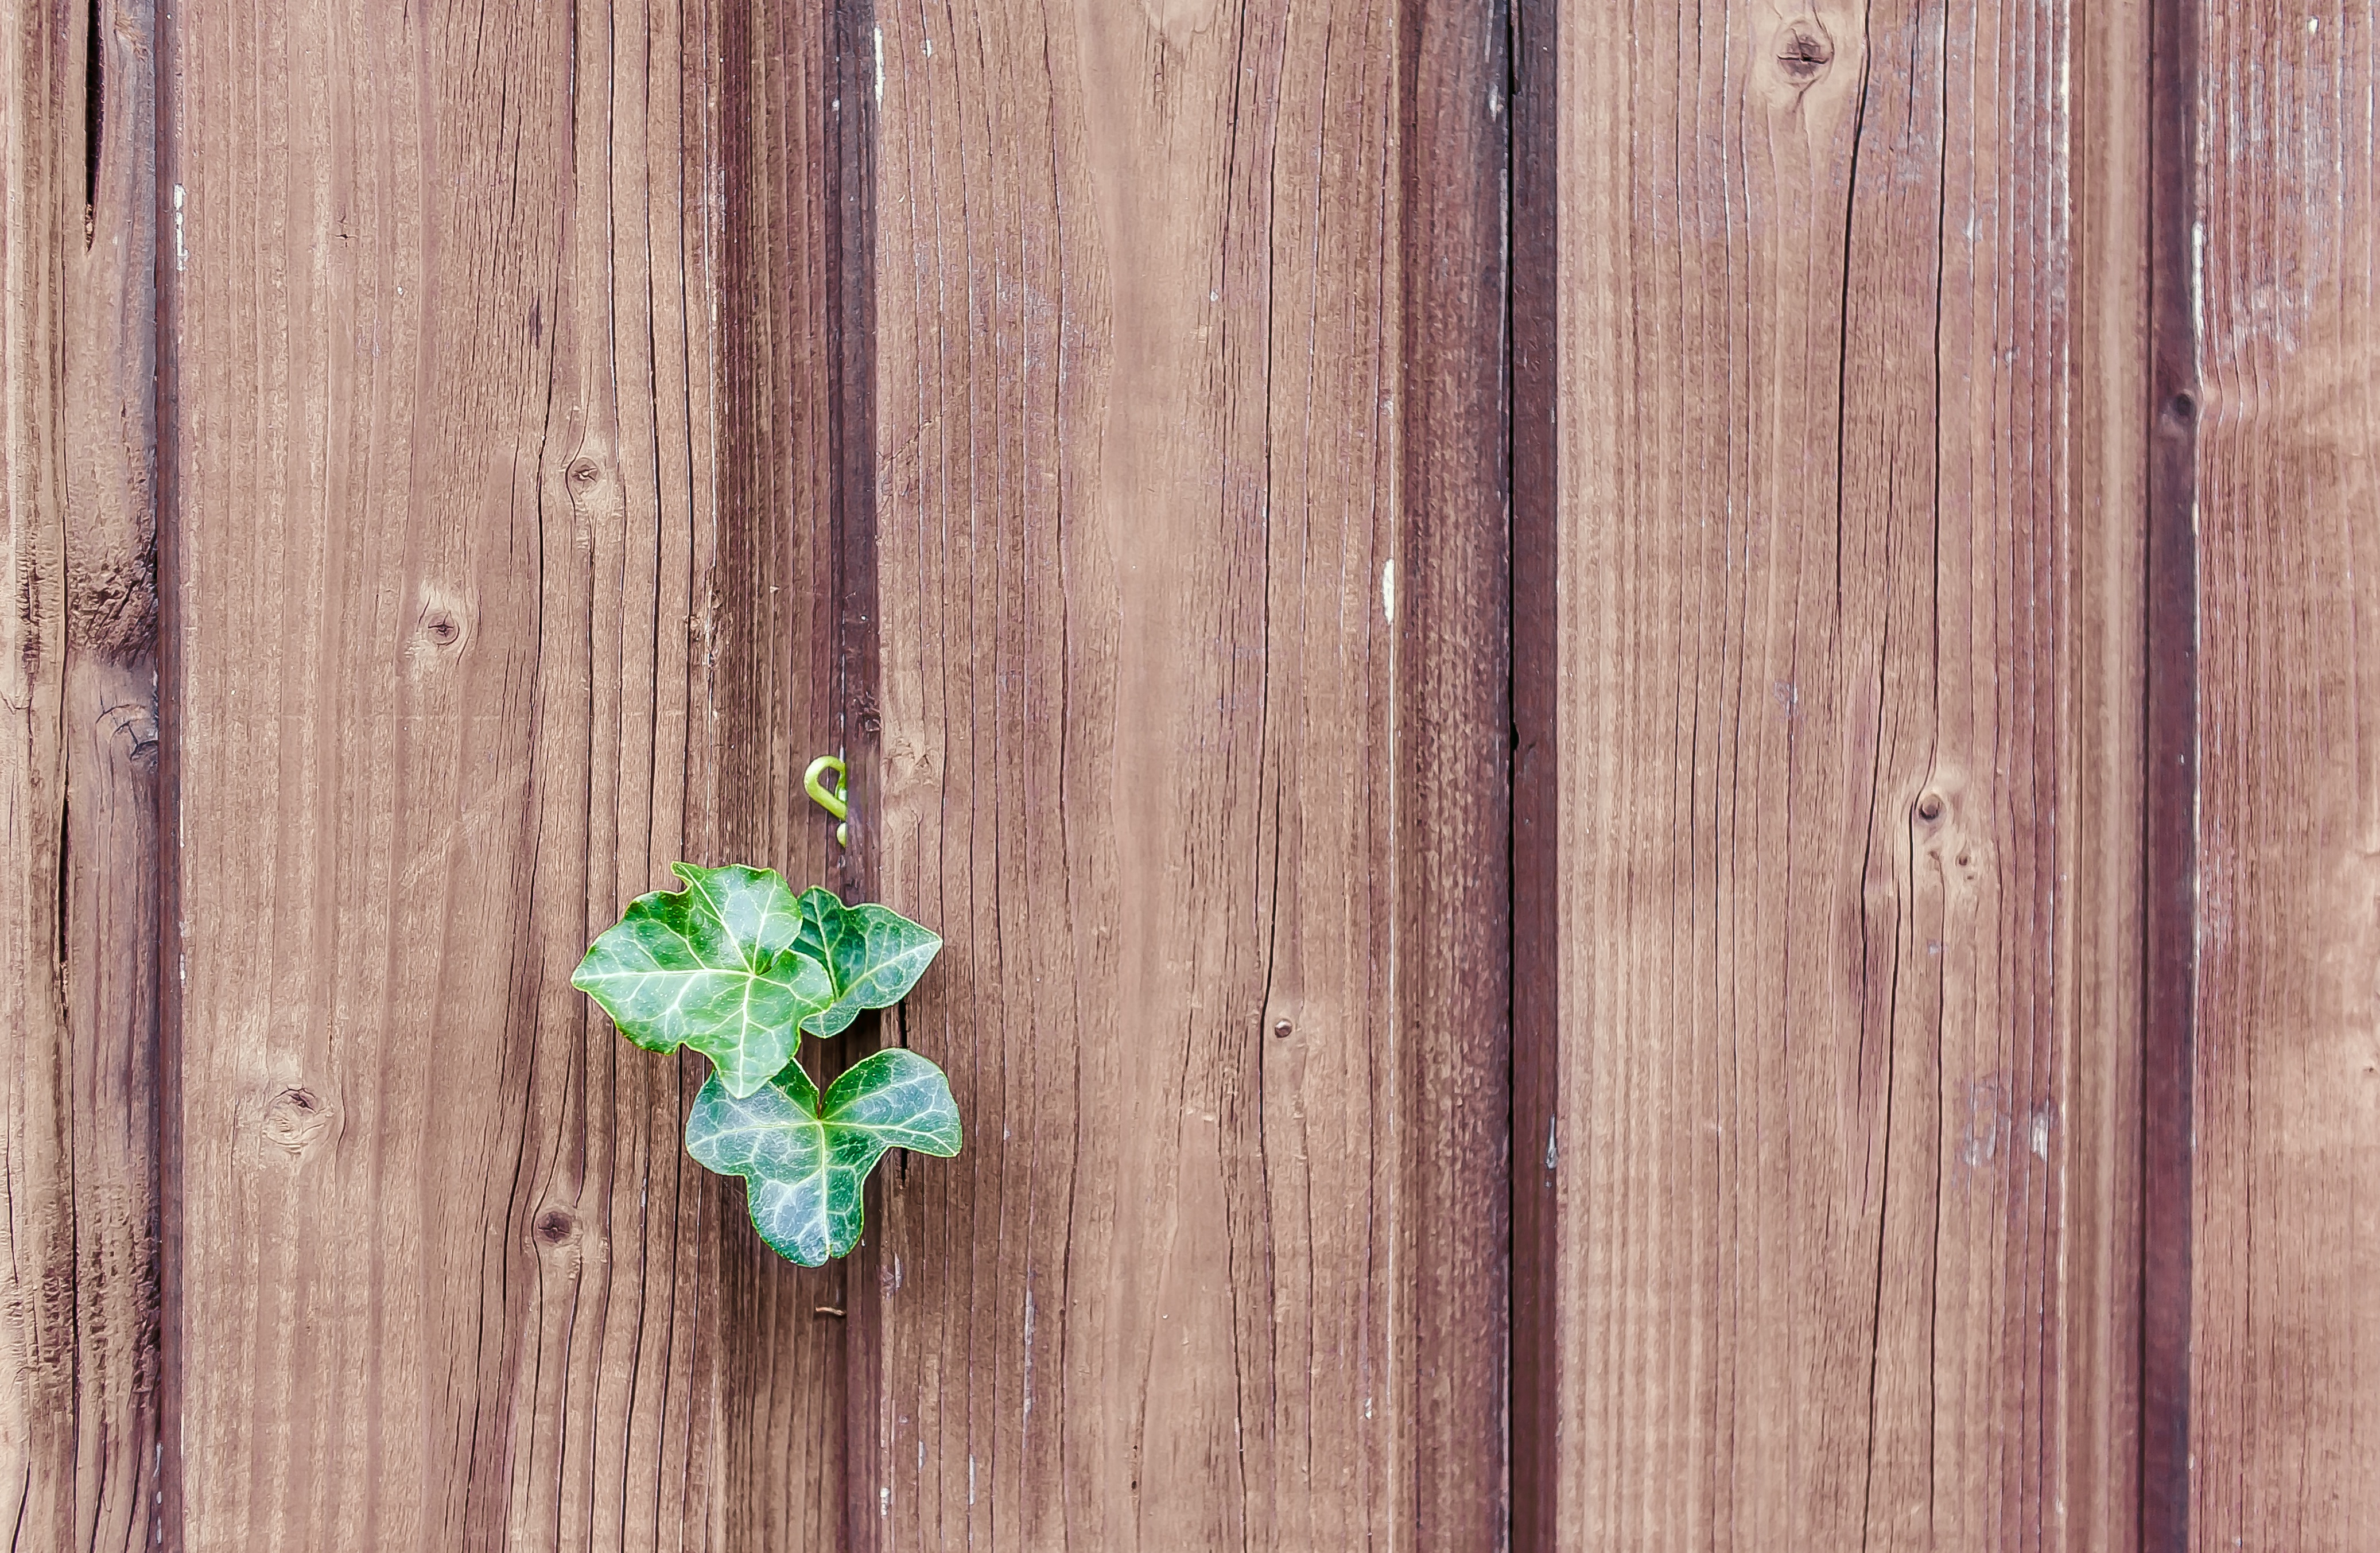 138860 download wallpaper Miscellanea, Miscellaneous, Wall, Fence, Planks, Board, Sheet, Leaf, Plant screensavers and pictures for free